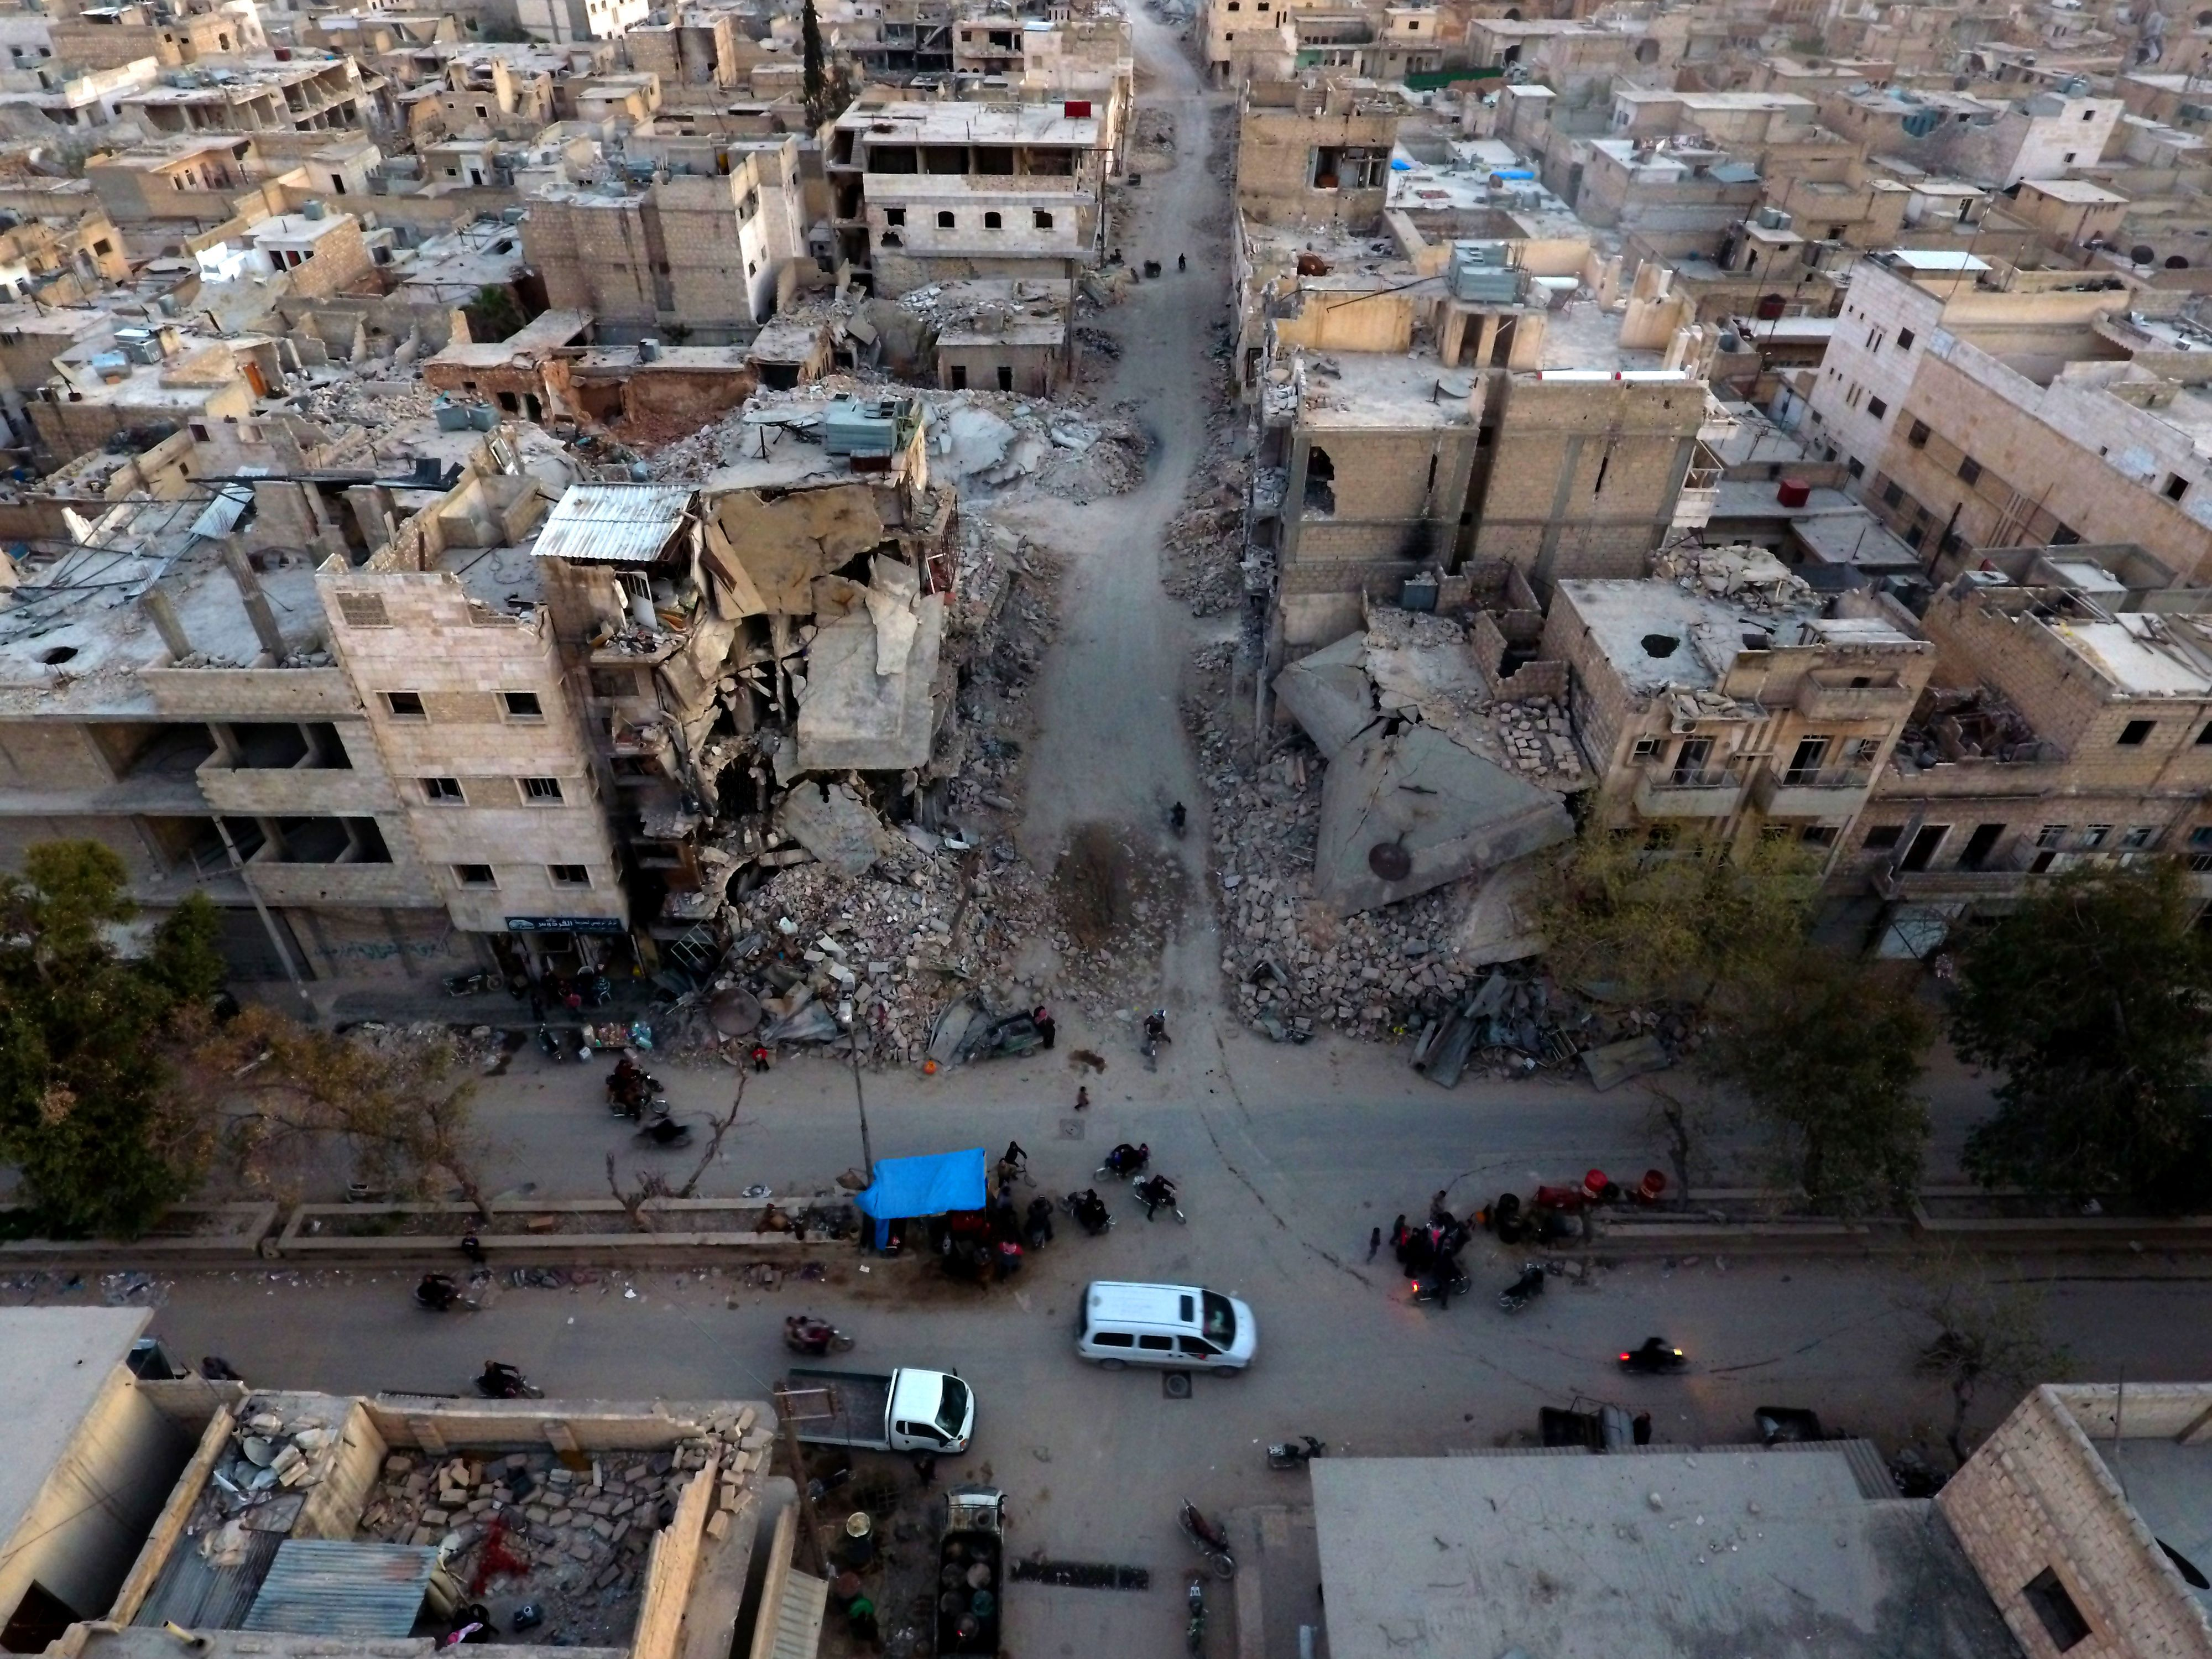 TOPSHOT - An aerial view shows destruction in al-Bab on March 29, 2017 a month after Turkish-backed rebels recaptured the northern Syrian town from Islamic State (IS) group fighters. Turkey on March 29, 2017 announced its military campaign inside northern Syria was over, without specifying whether it will pull its troops out from the neighbouring country / AFP PHOTO / Zein Al RIFAI / TT / kod 444